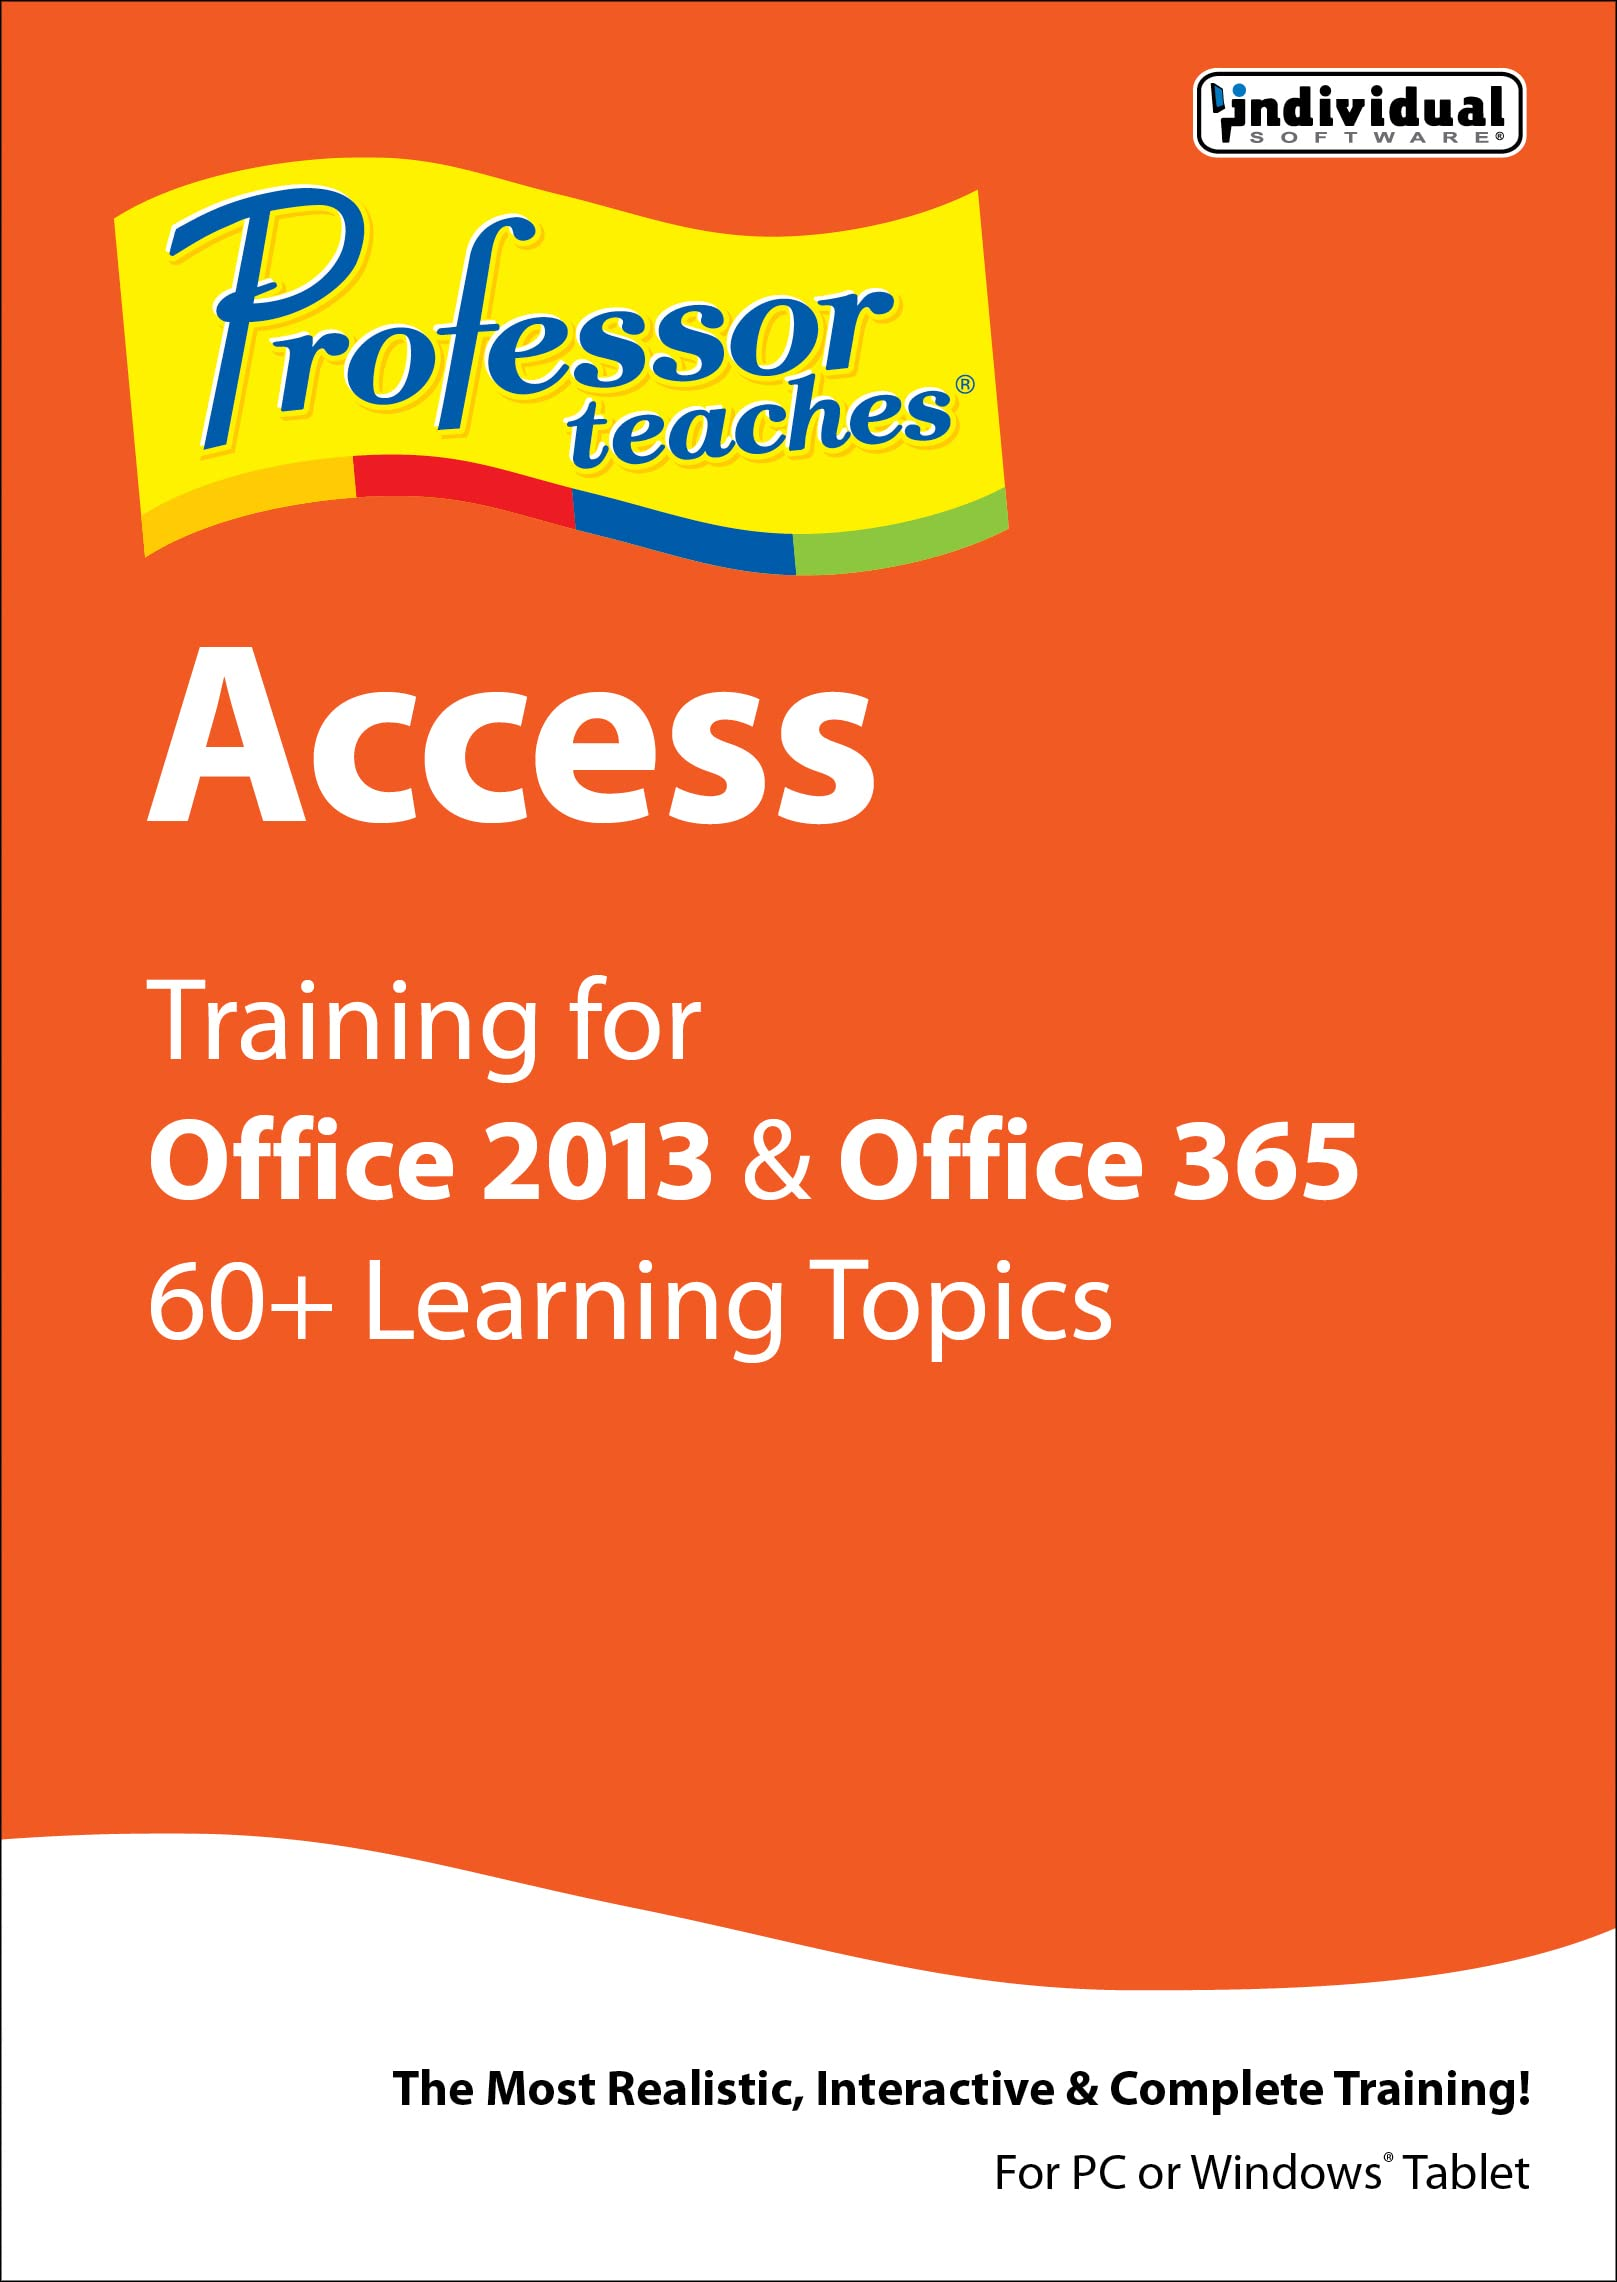 Professor Teaches Access for Office 2013 & Office 365 [Download] 91fYc7pURkL